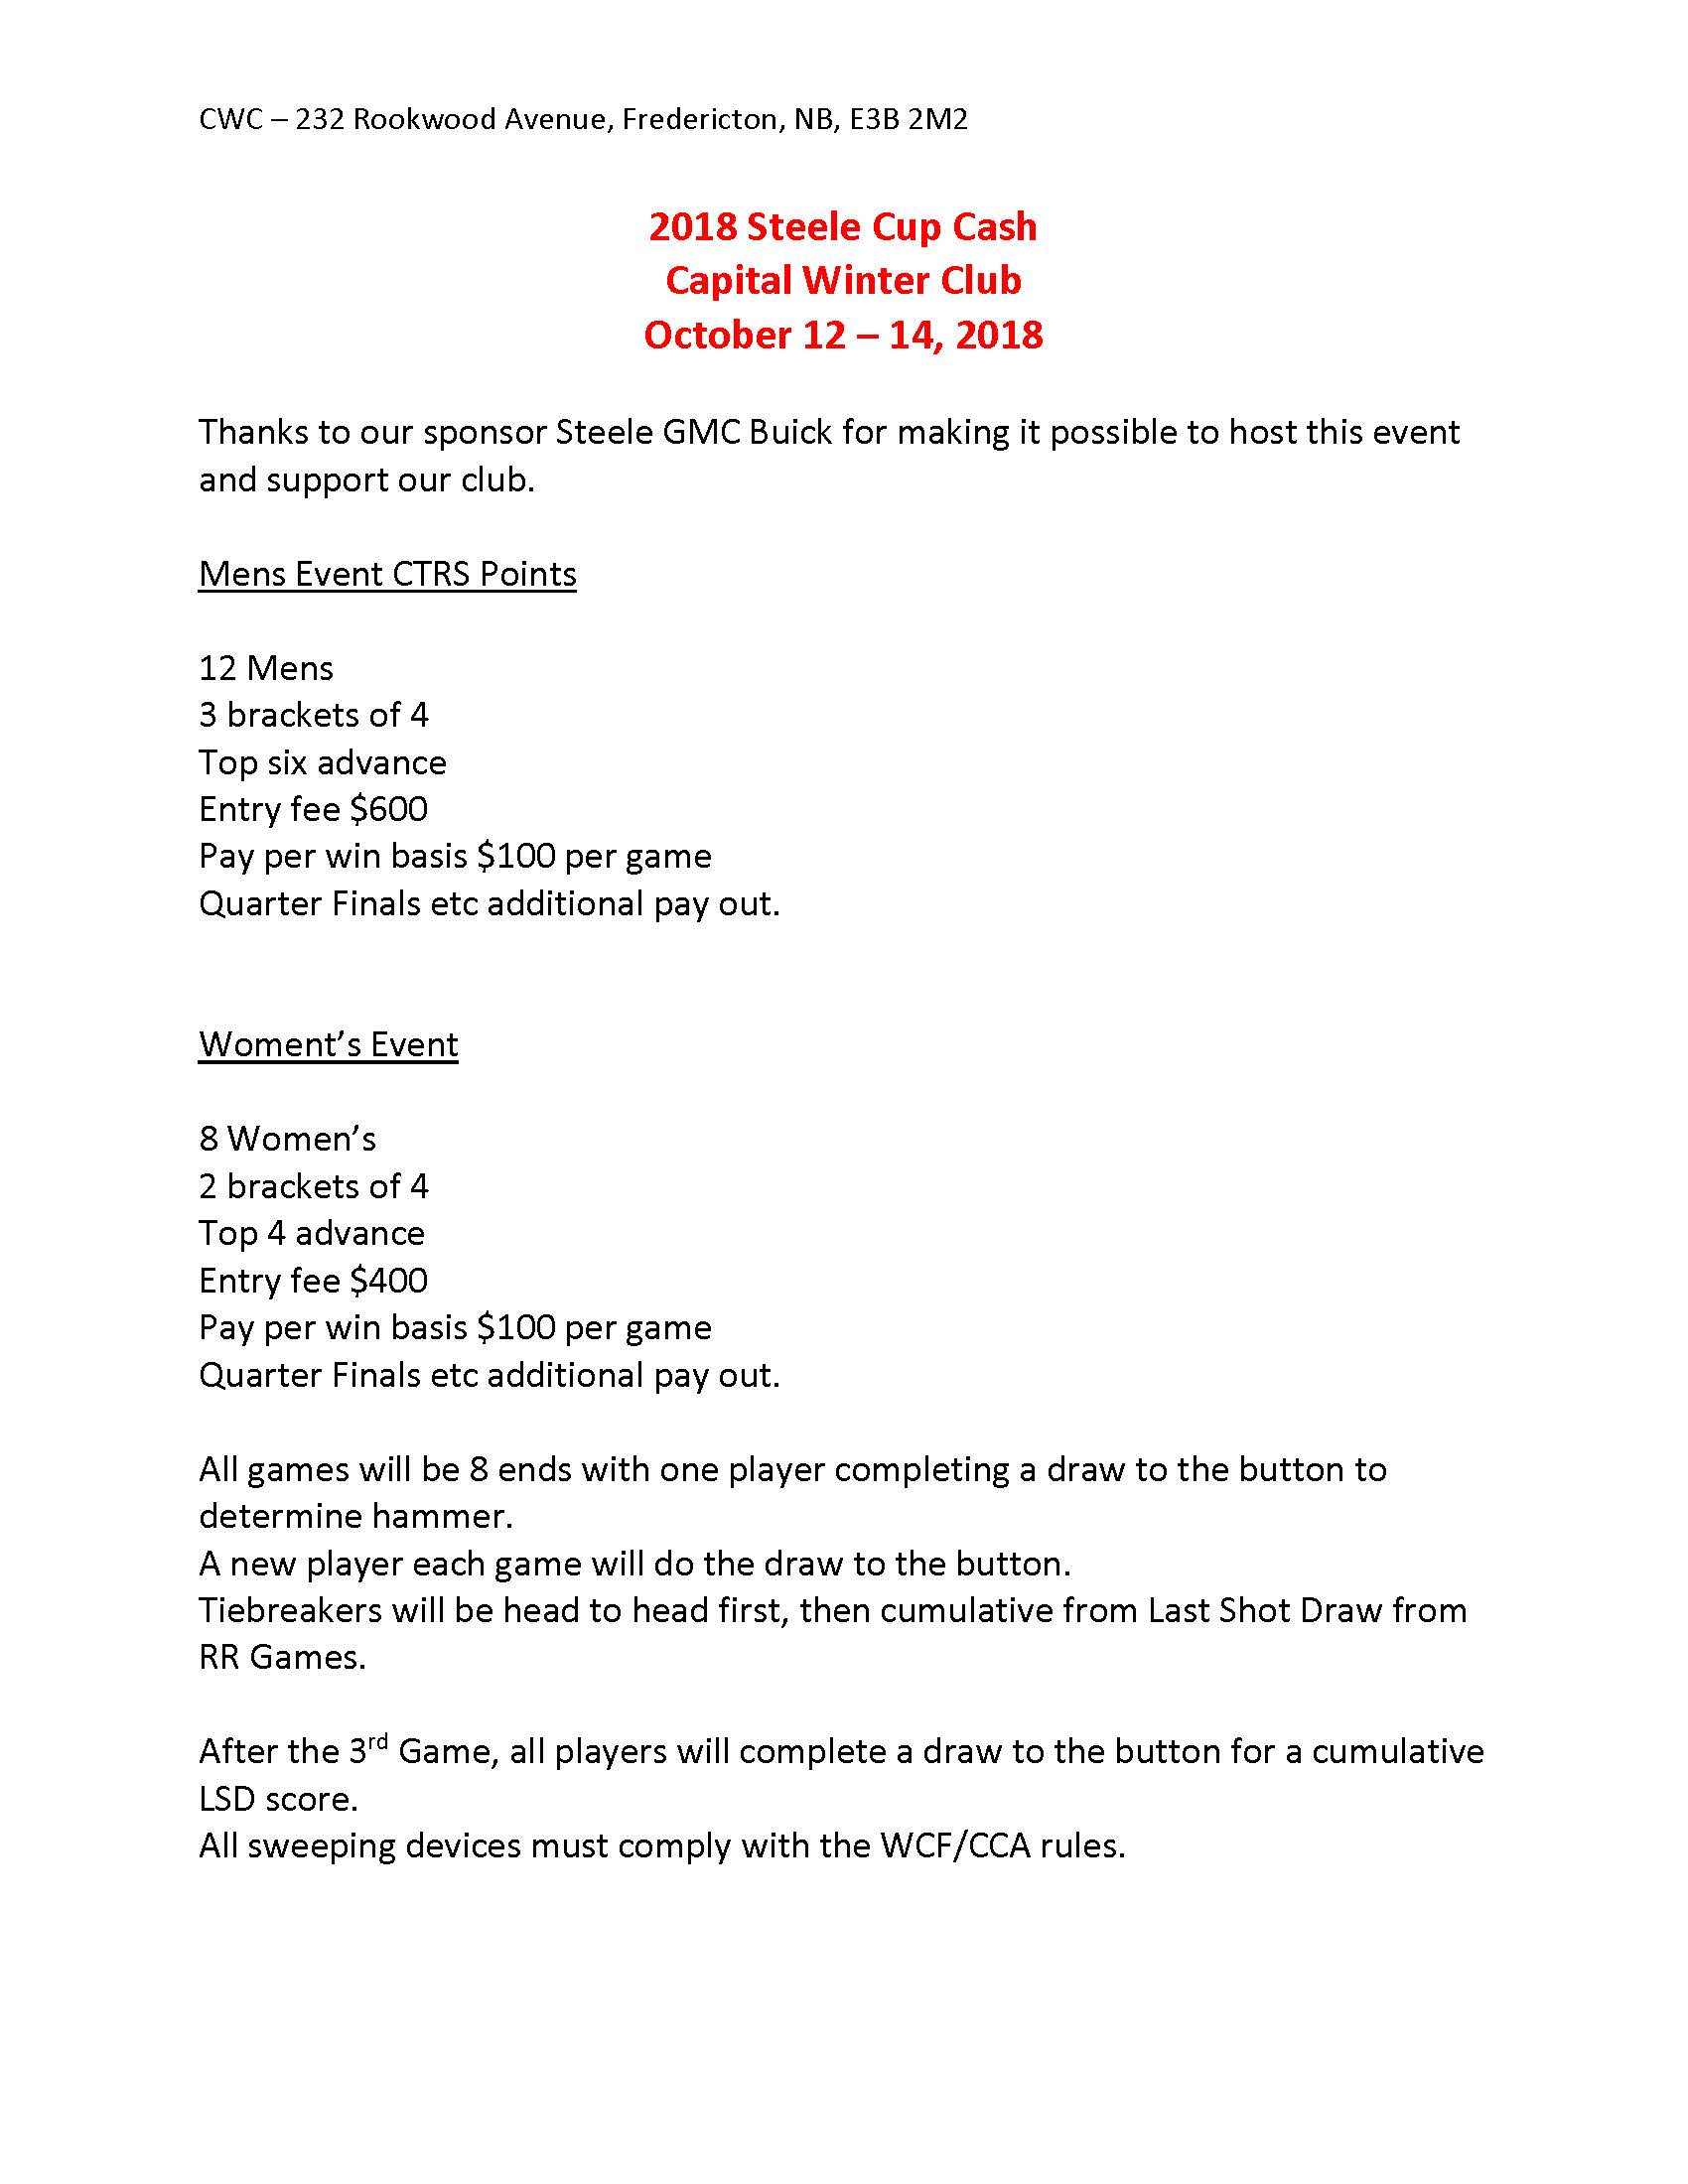 2018 Steele Cup Cash Info and Team Entry Sheet Page 1